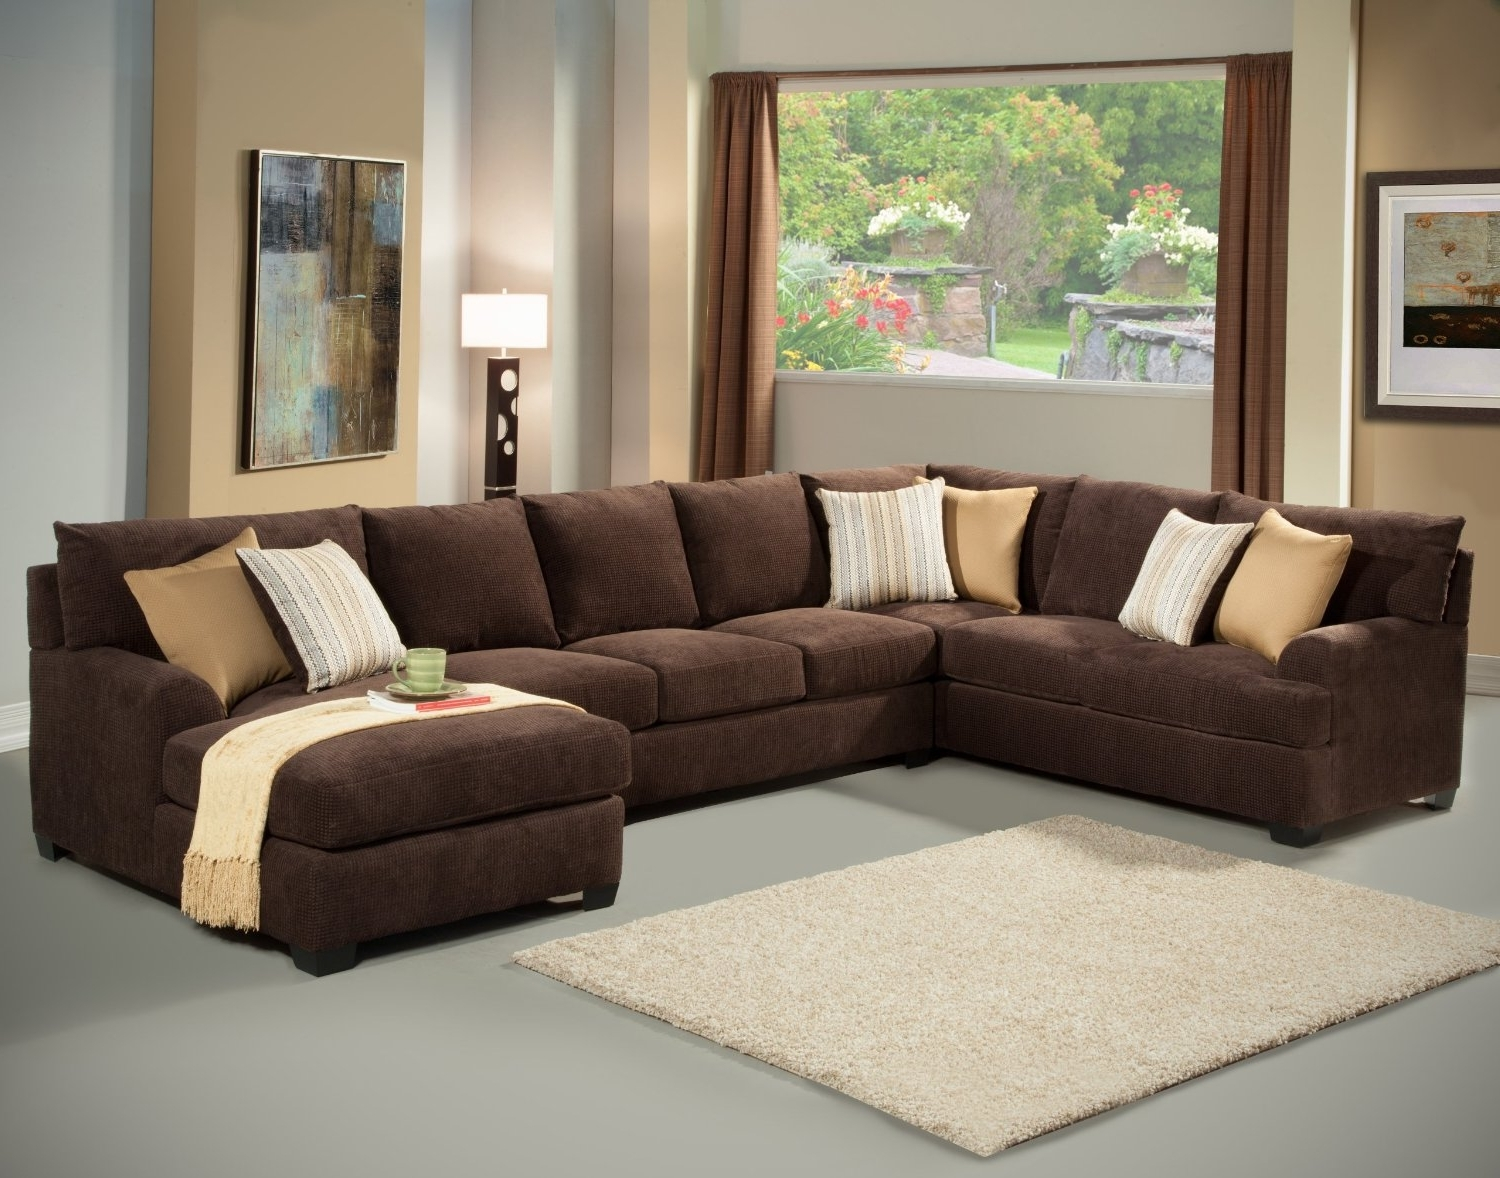 2019 Sectional Sofa. Admirable Design Of Chocolate Brown Sectional Sofa For  Kelowna Bc Sectional Sofas